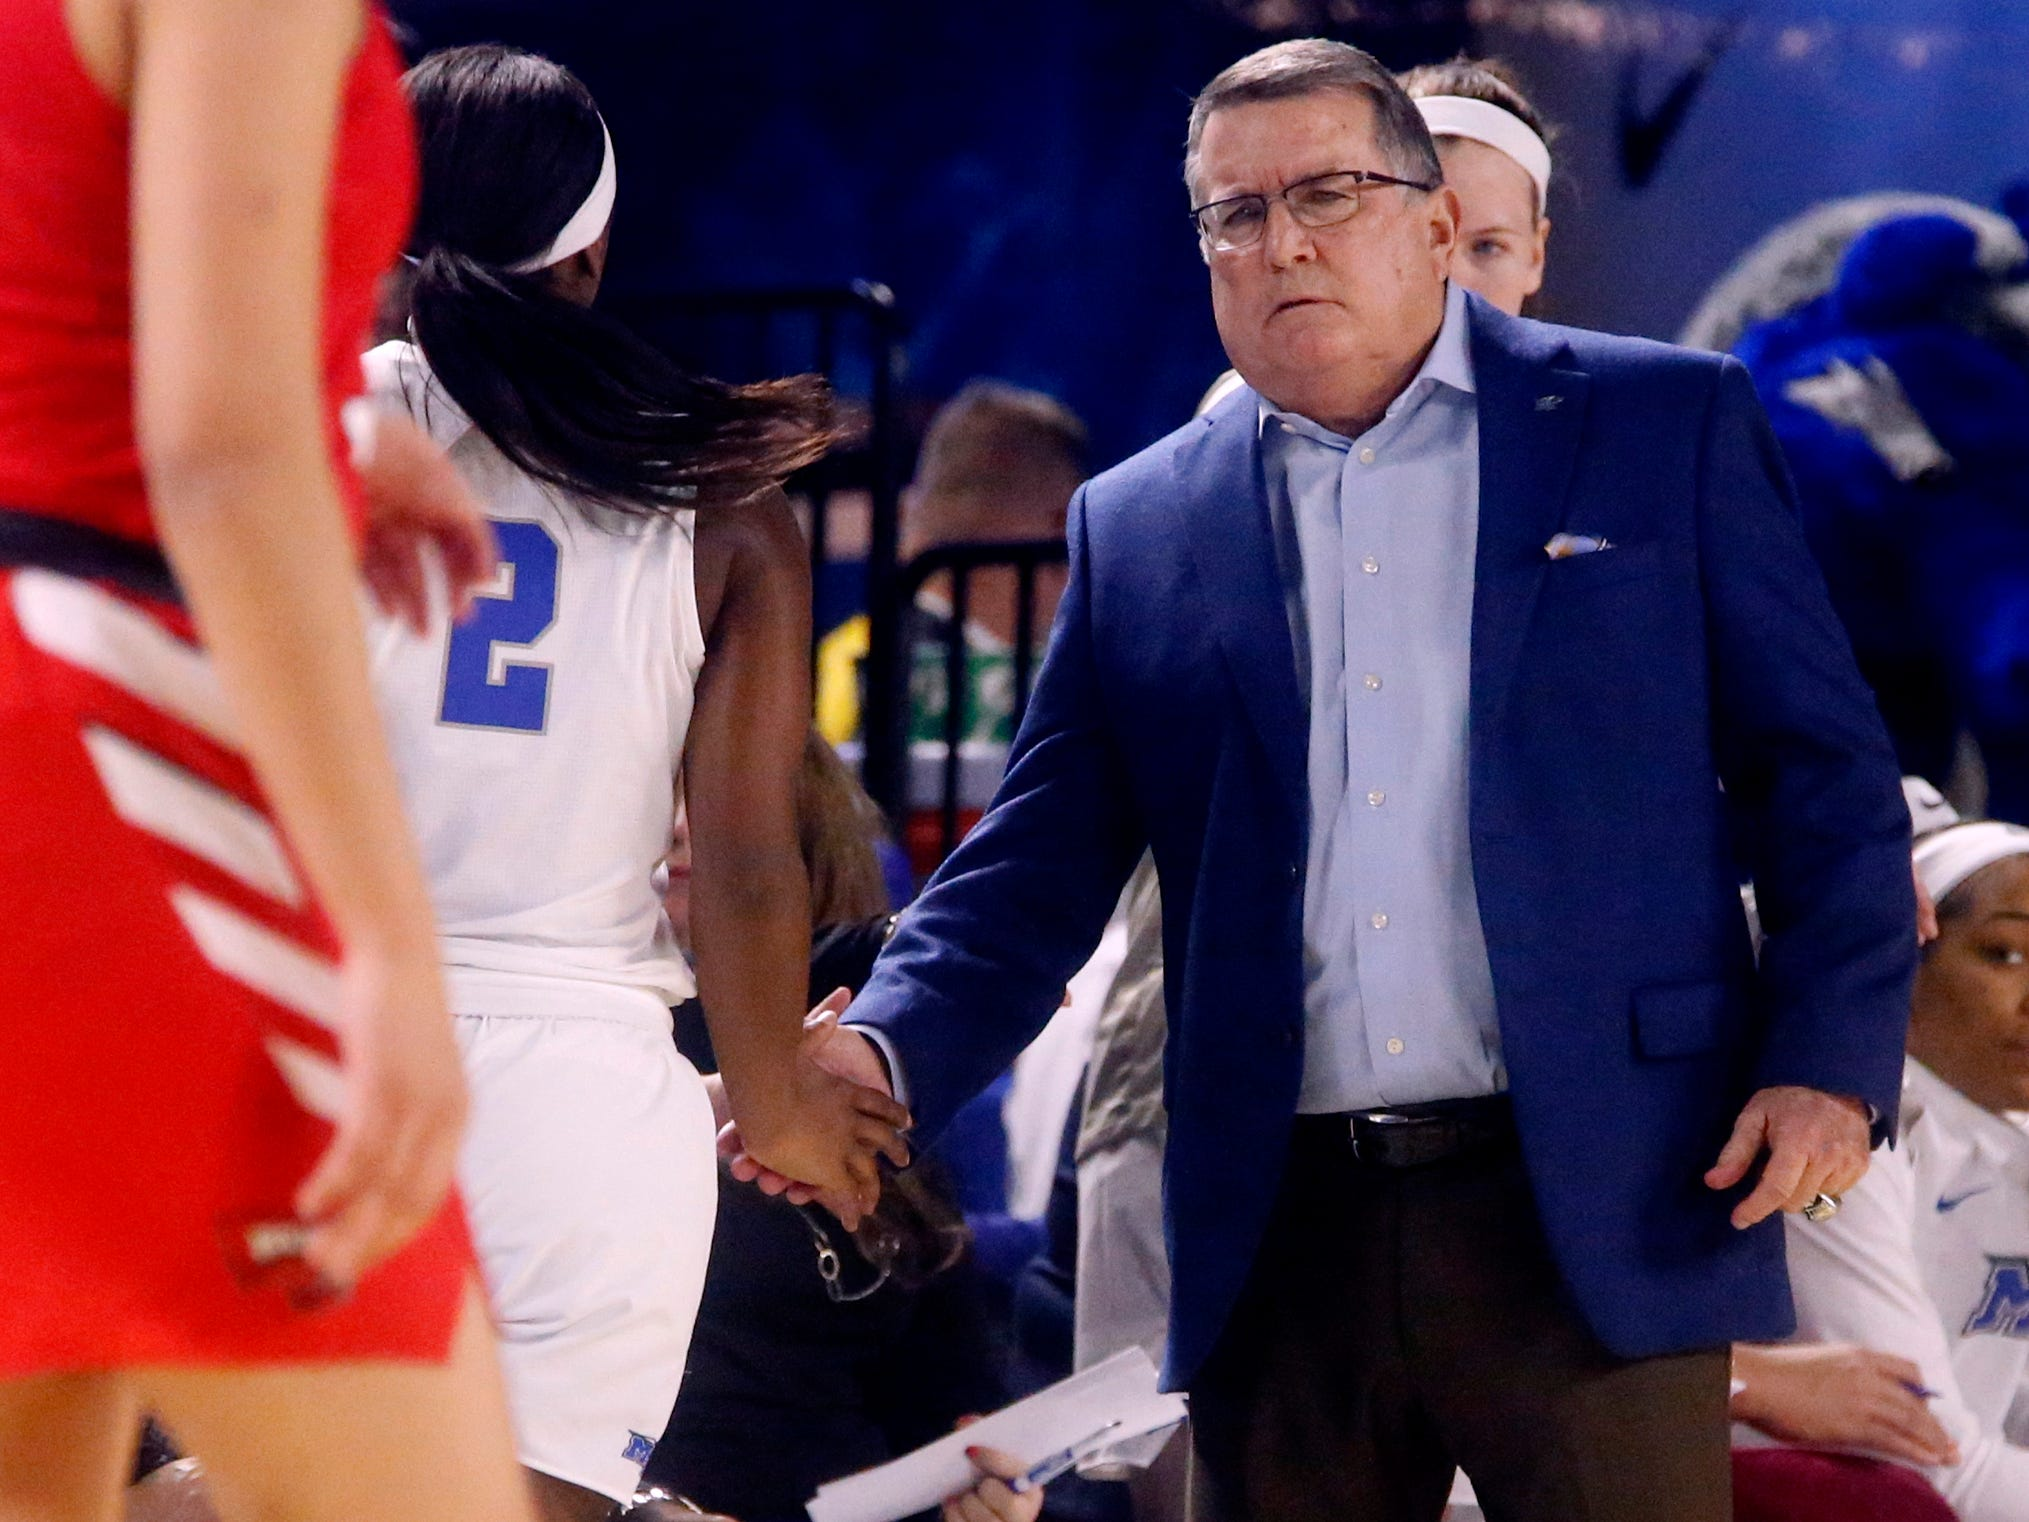 MTSU's head coach Rick Insell on the sidelines as MTSU's guard Taylor Sutton (2) comes out of the game for a play during the game against Western on Thursday, Feb. 14, 2019.